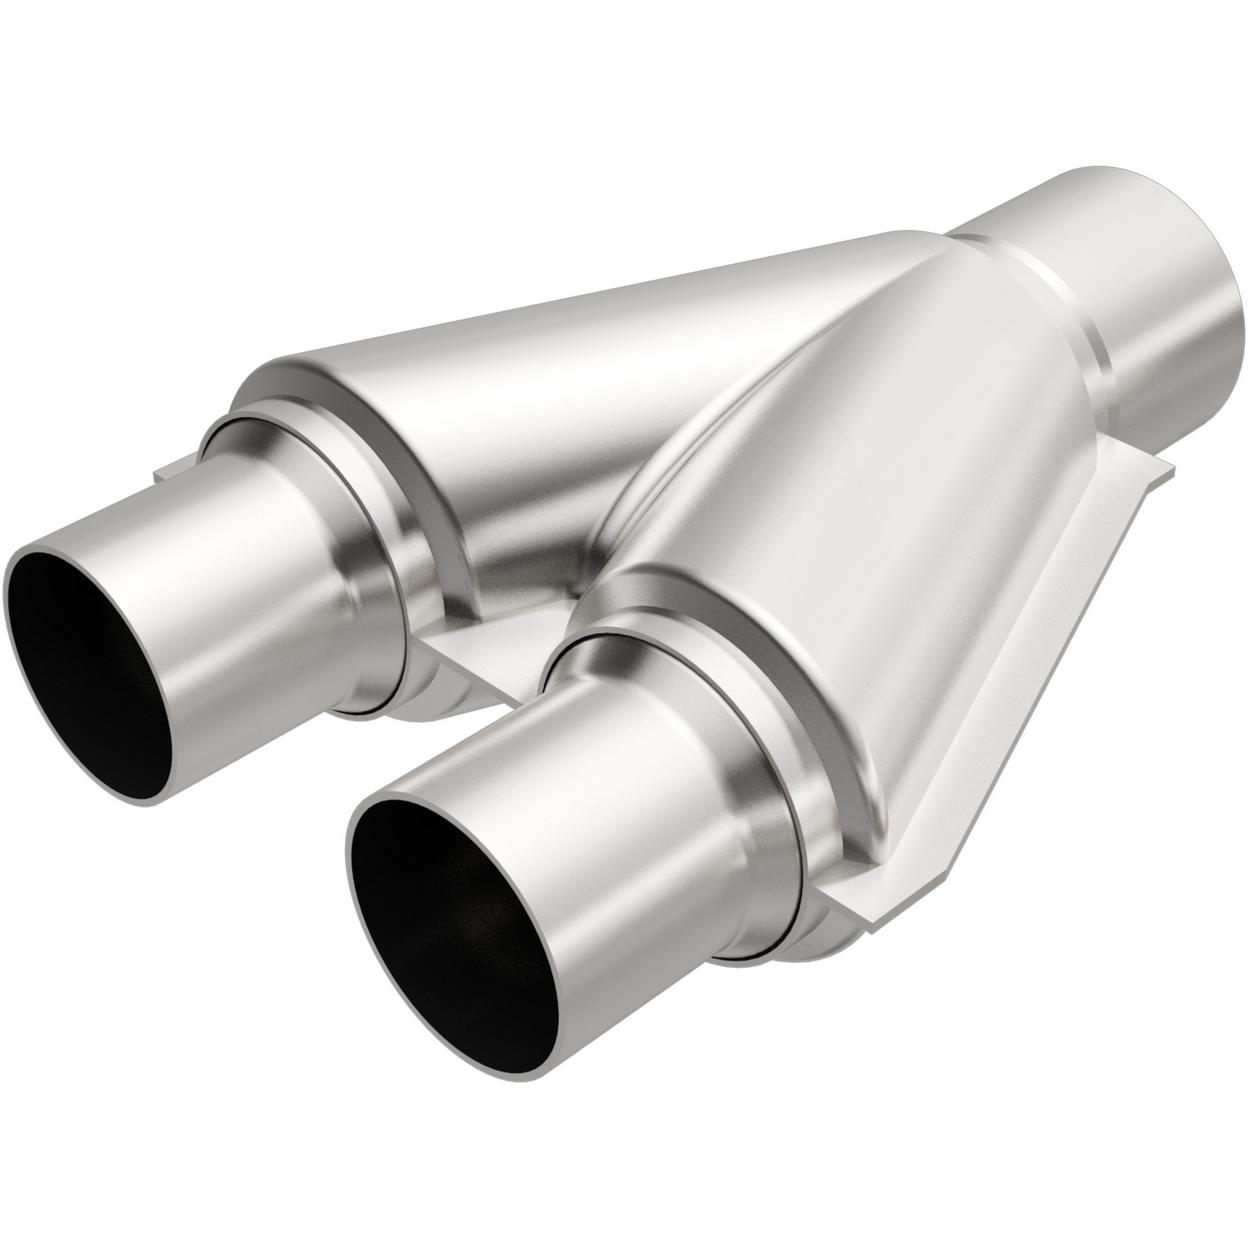 Exhaust Y-Pipe - 3.00/3.00